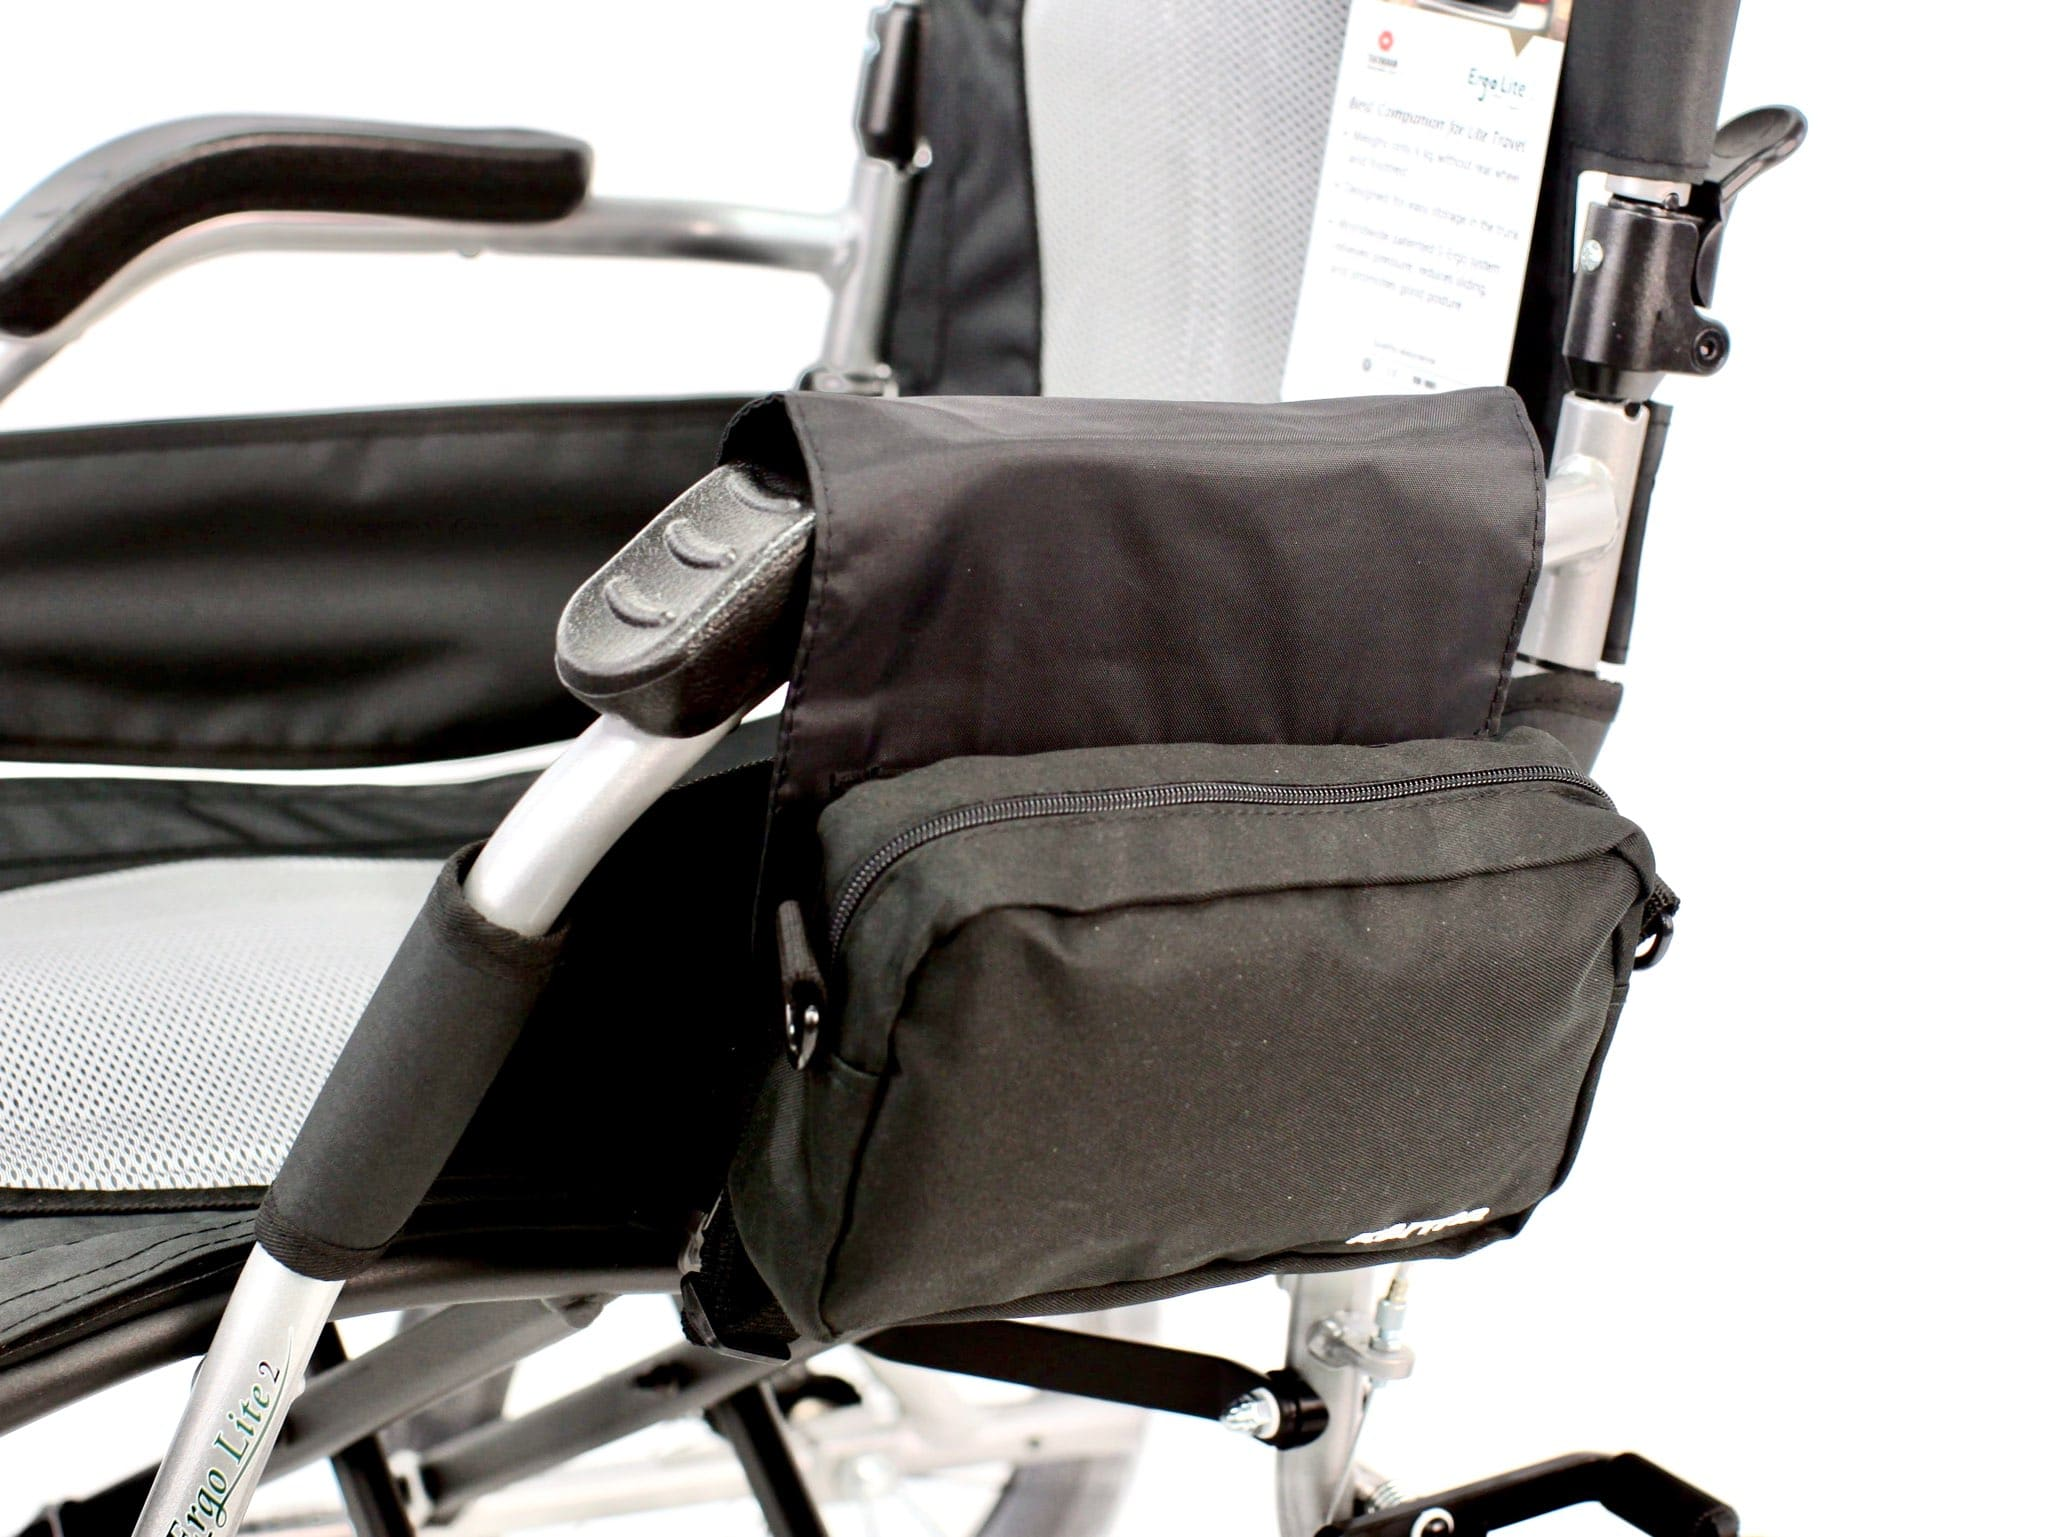 CP22 LUX.2 2 Wheelchair Carry pouch